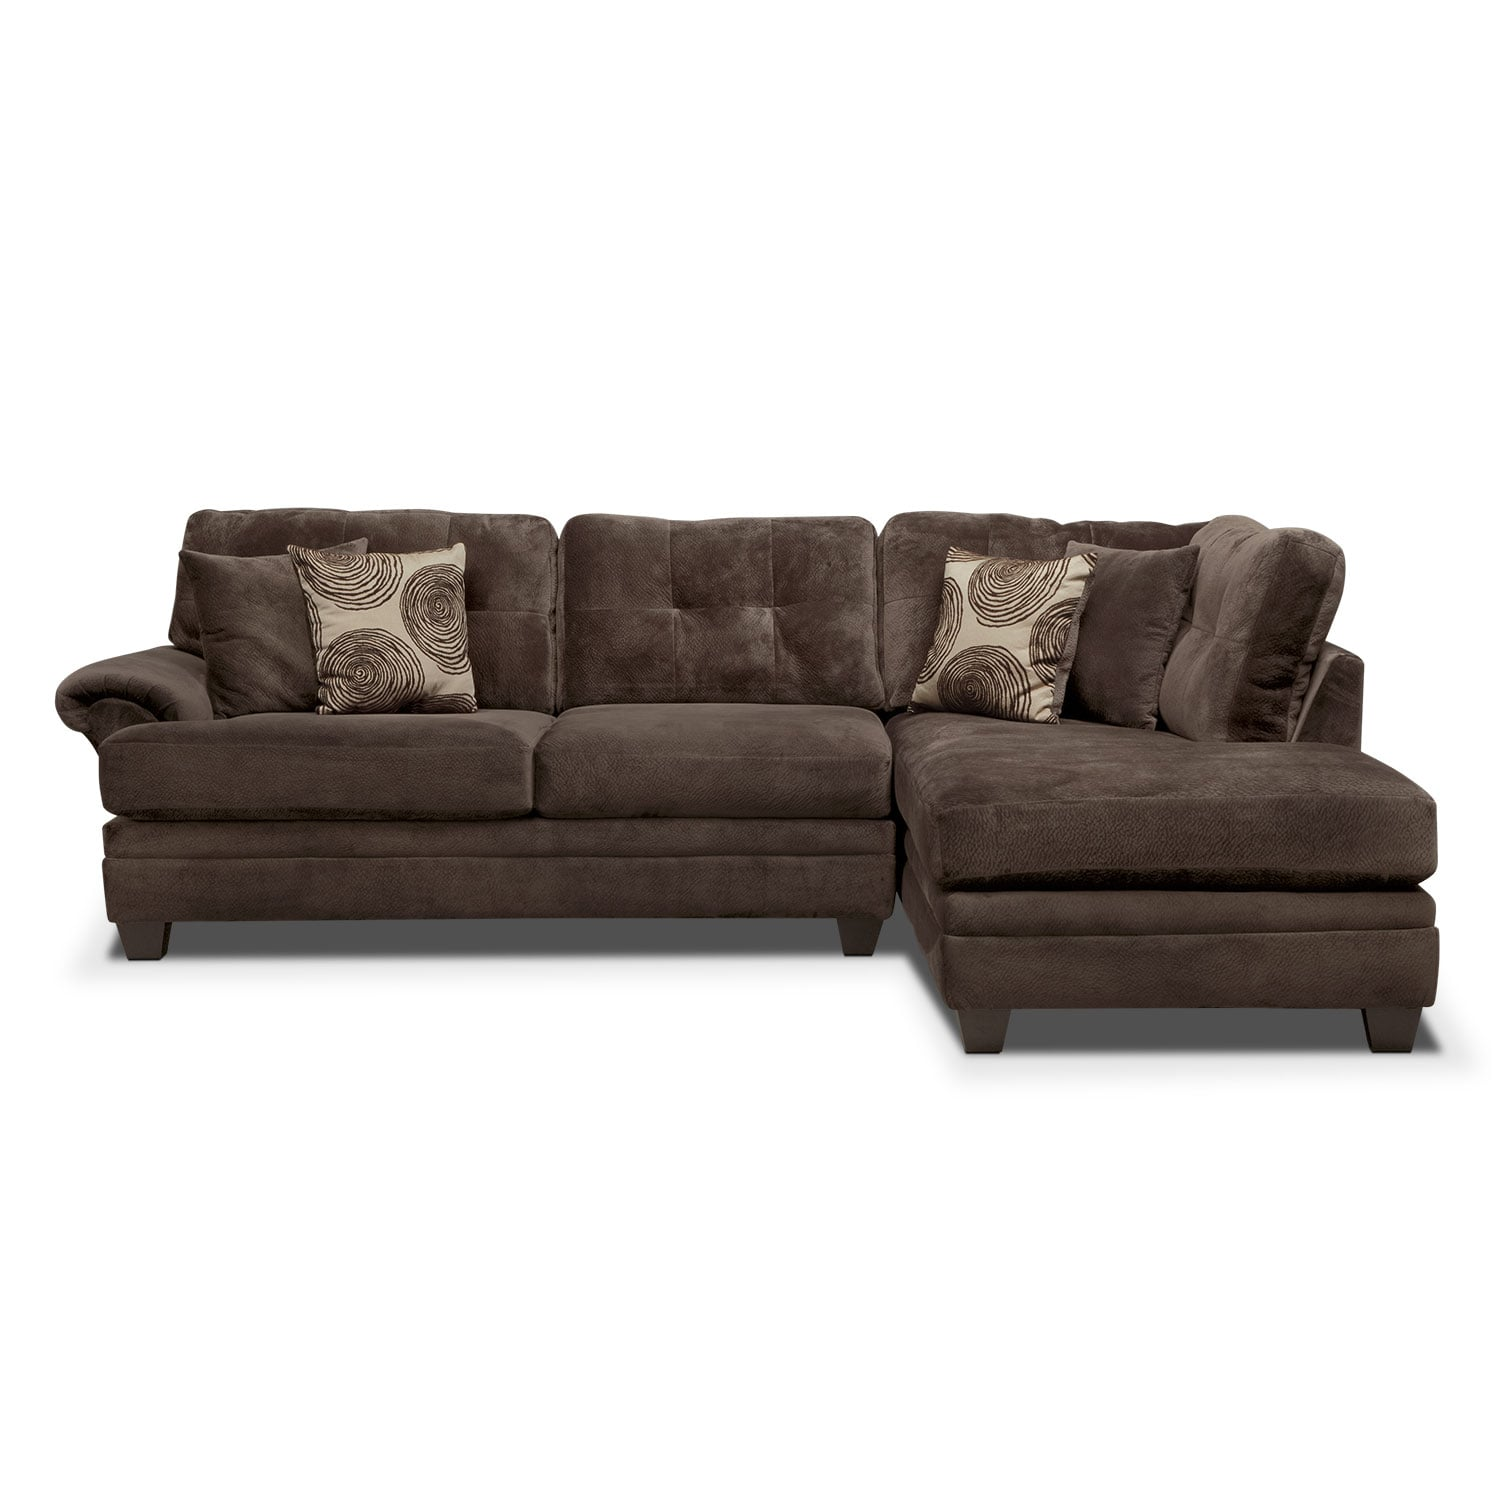 cordelle 2 piece right facing chaise sectional chocolate. Black Bedroom Furniture Sets. Home Design Ideas